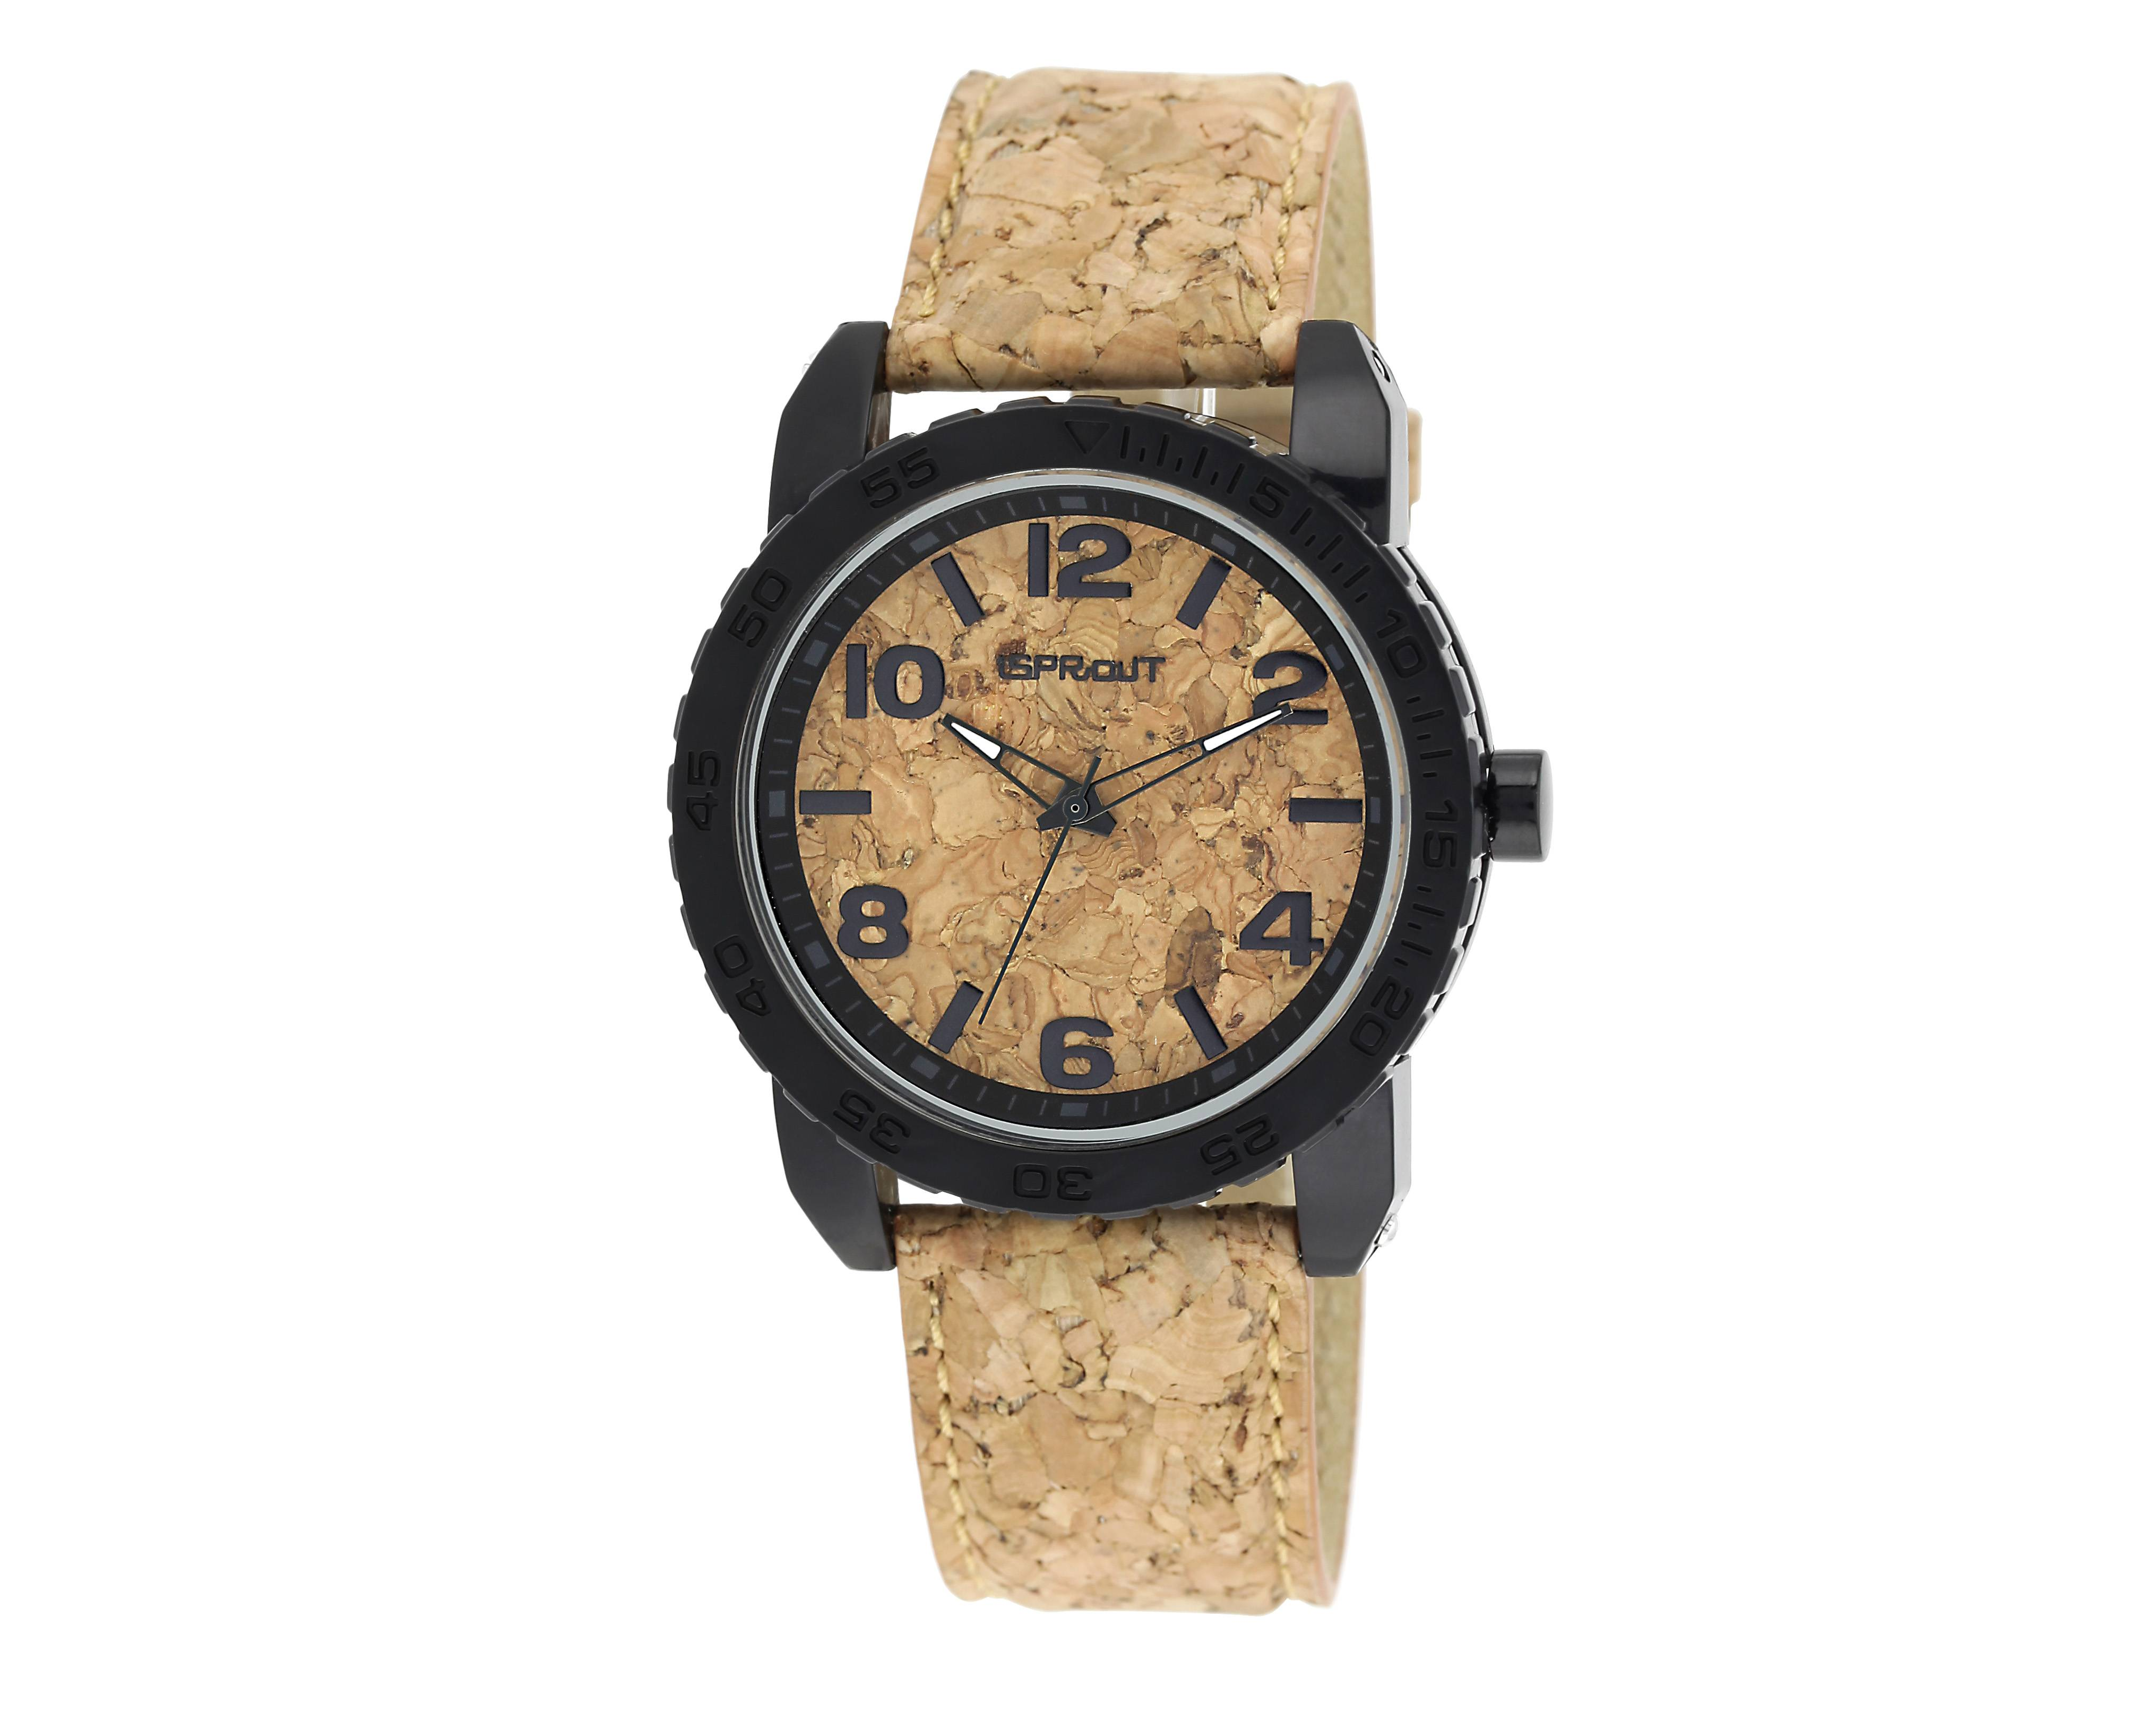 This watch from Sprout Watches is made of natural cork.